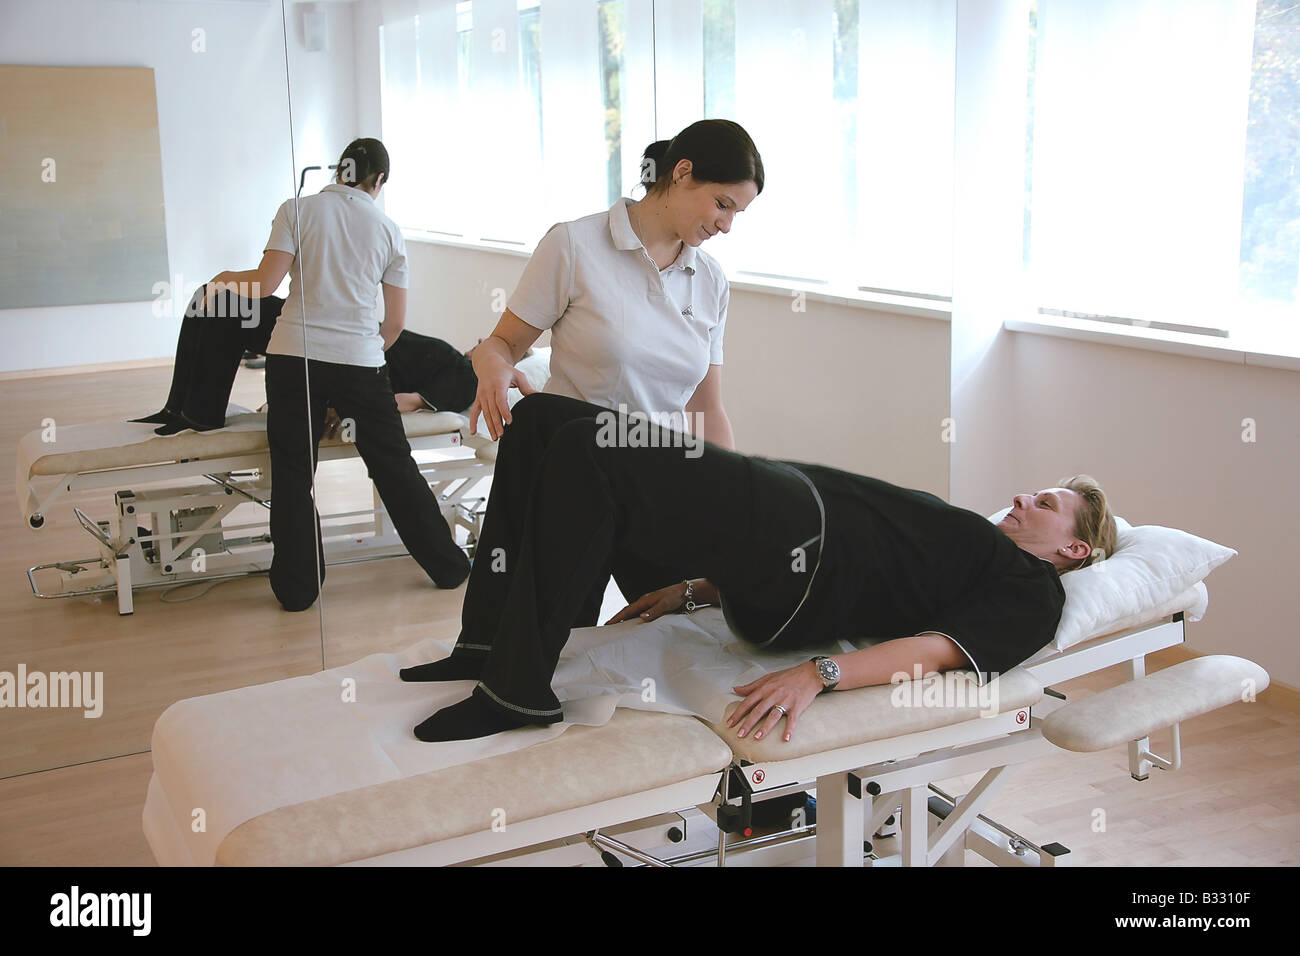 Post-operative measures after operation - Stock Image